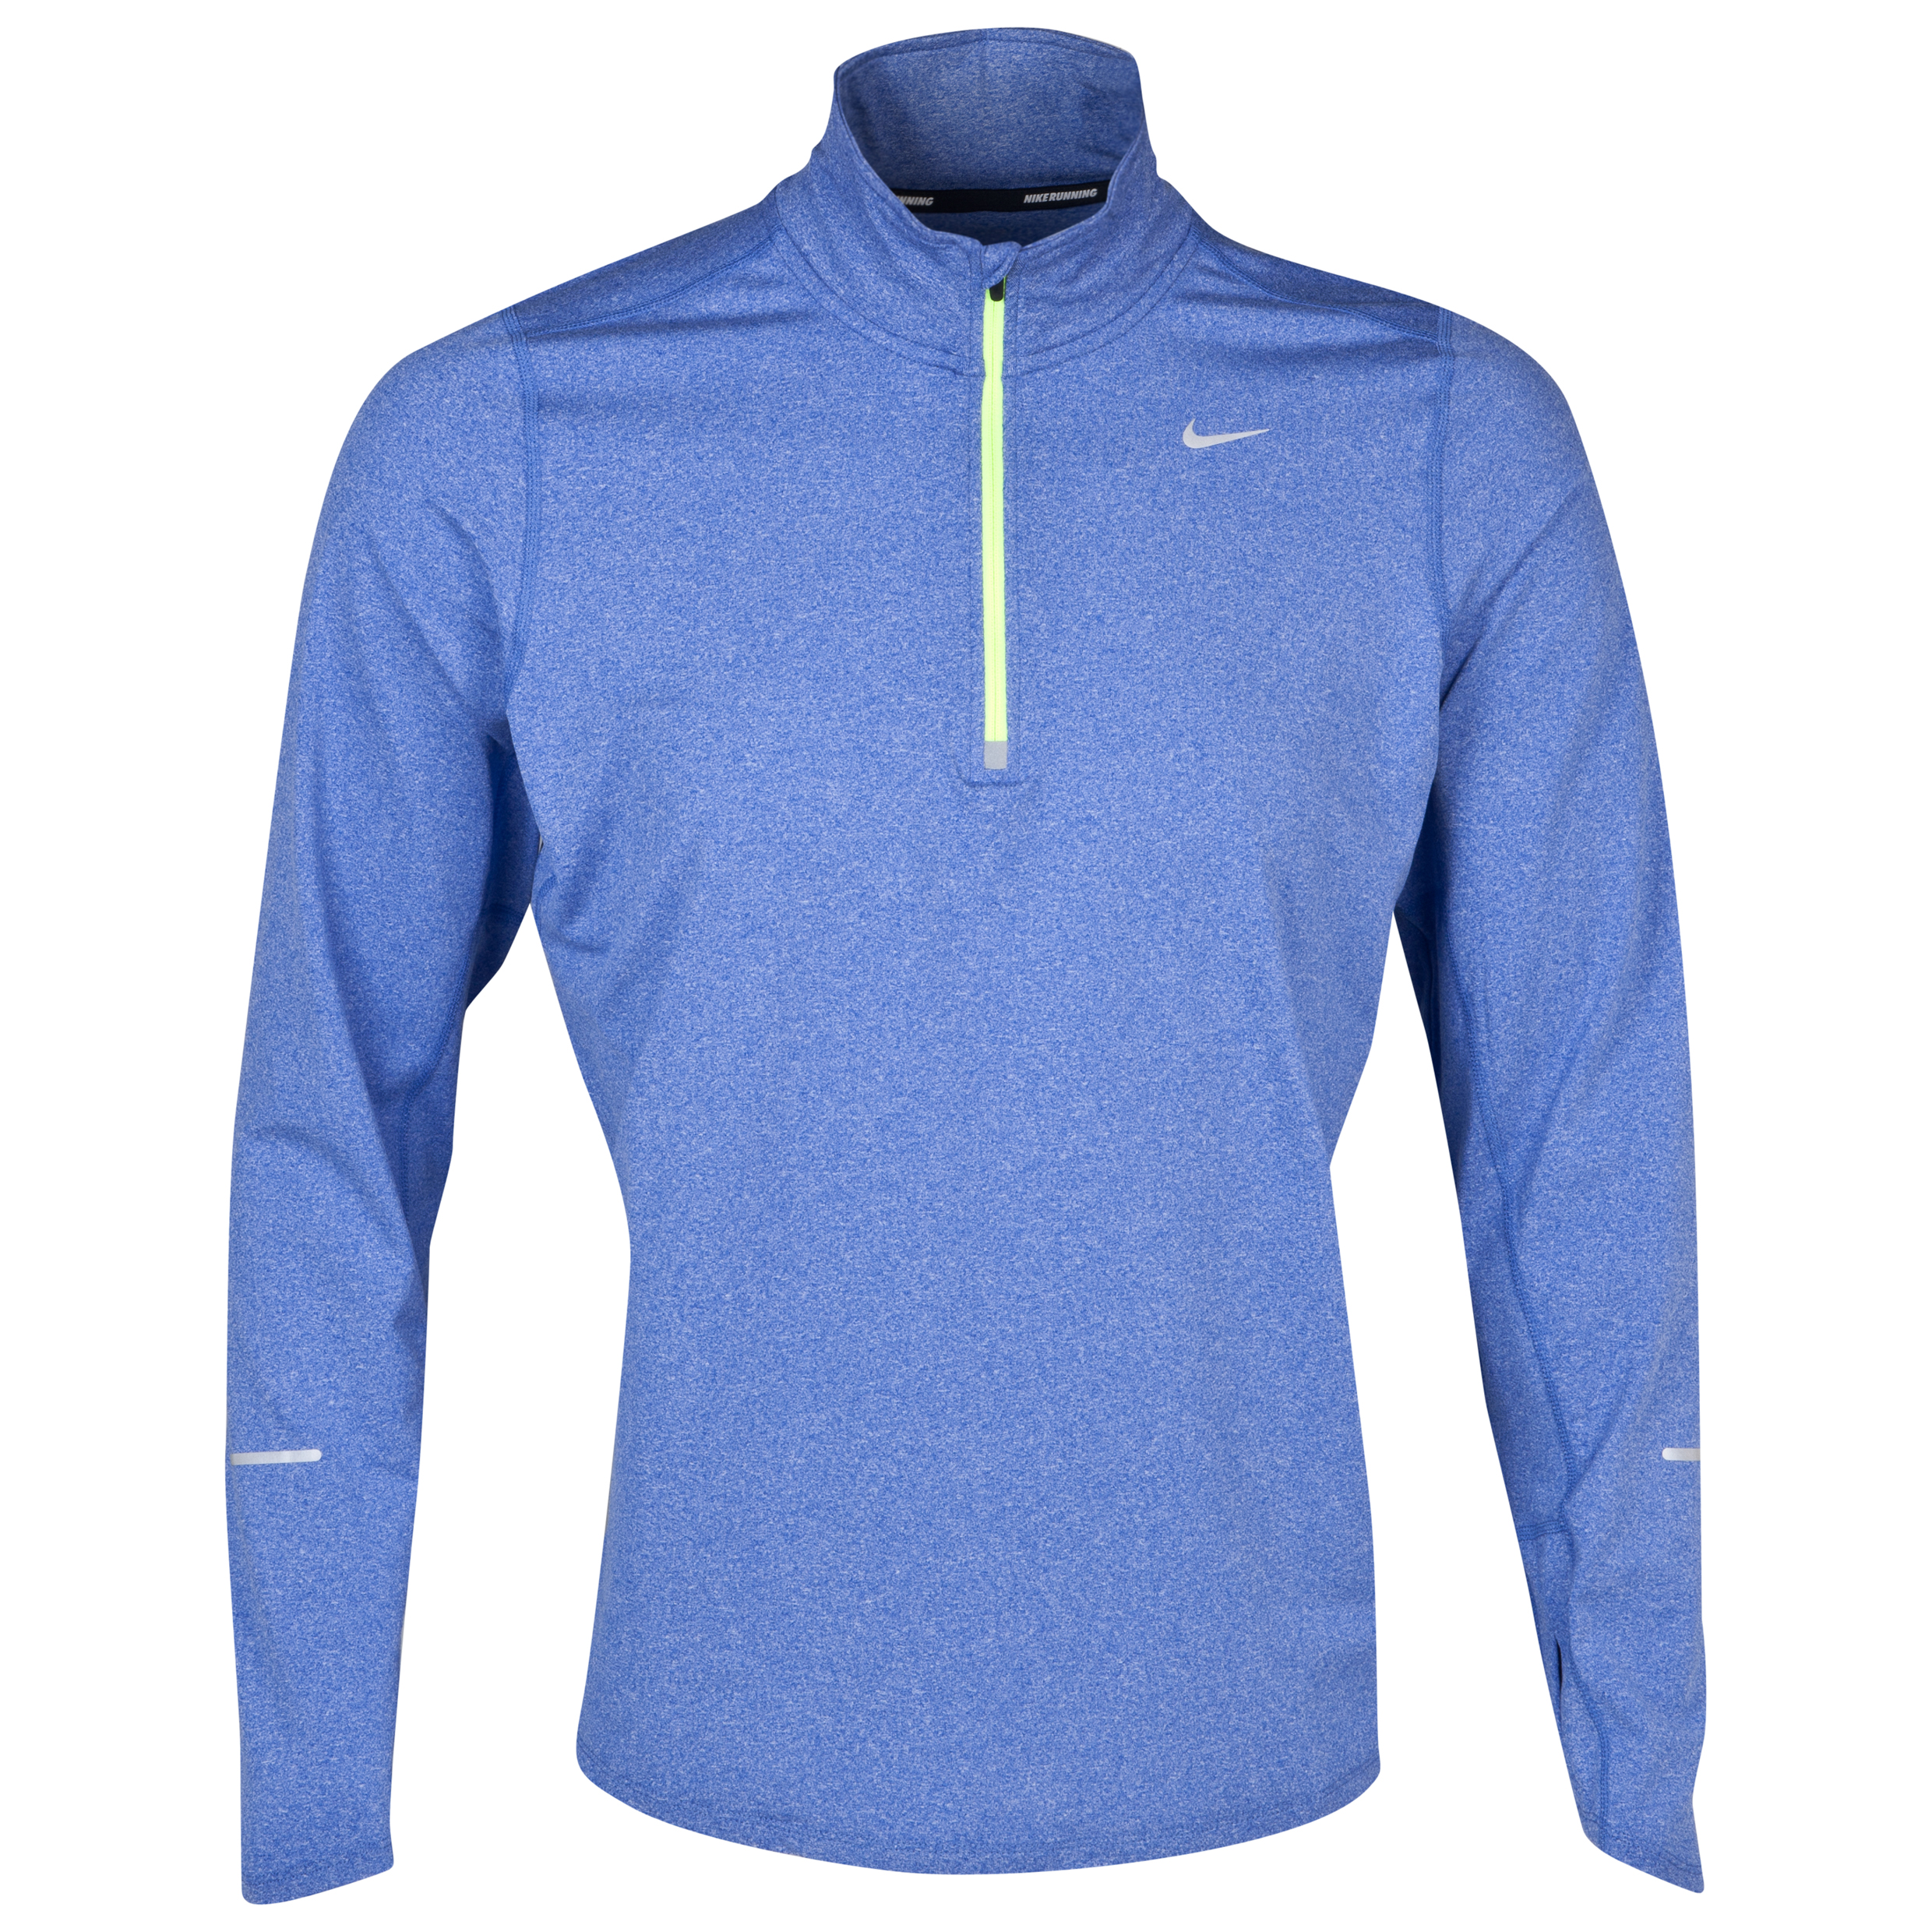 Nike Element 1/2 Zip - Hyper Blue/Reflective Silver